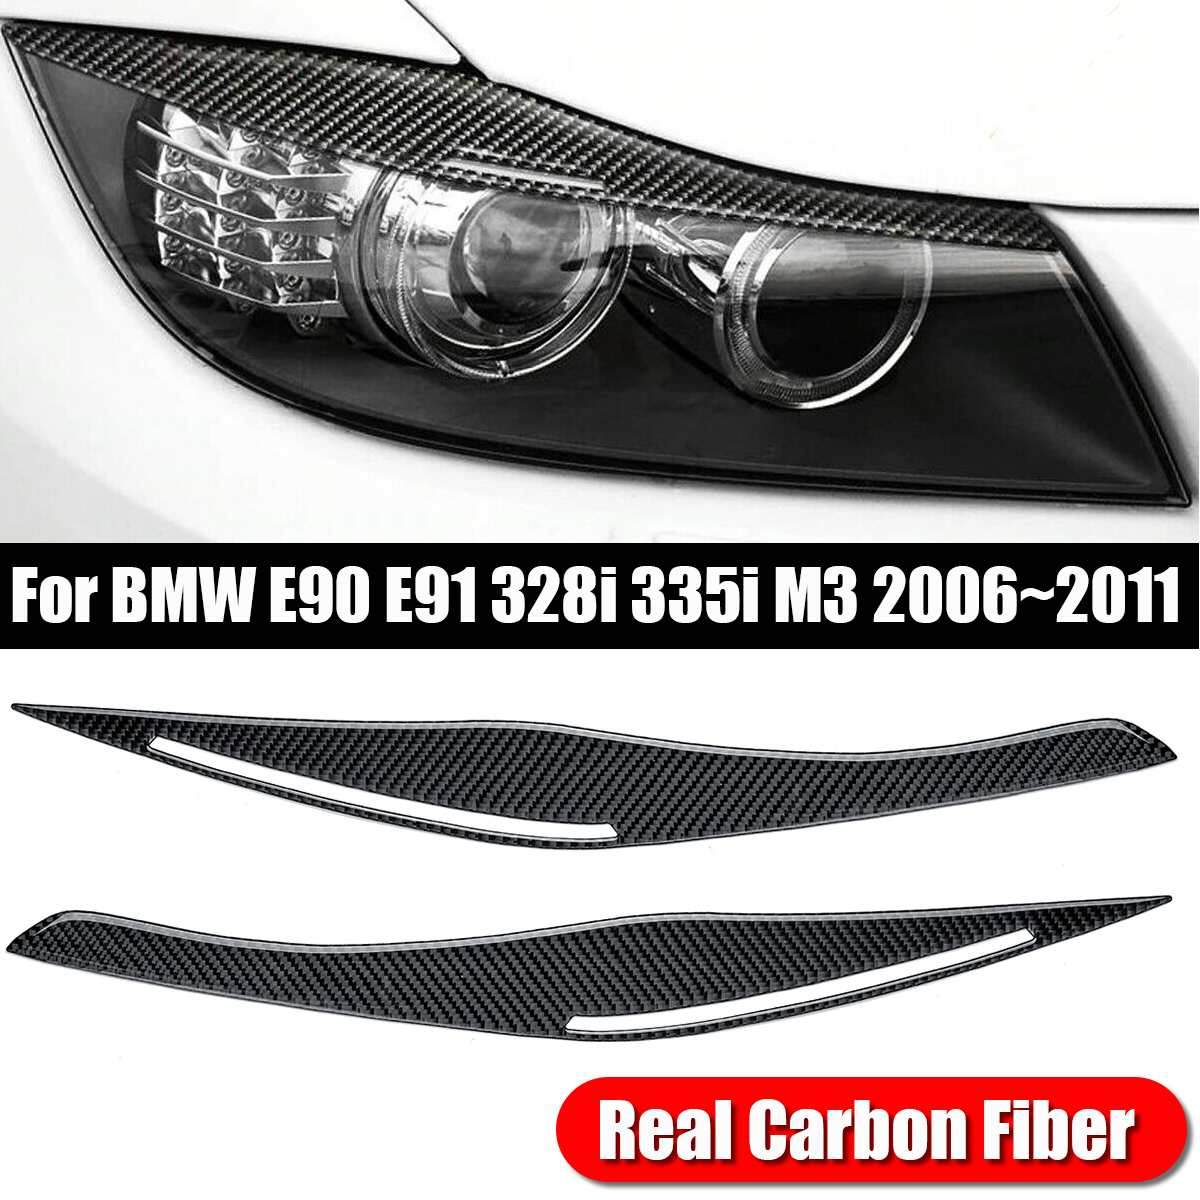 1pair Real Carbon Fiber Car Headlight Eyelid Eyebrow Cover Trims for BMW E90 E91 328i 335i M3 2006-2011 Car Stickers image